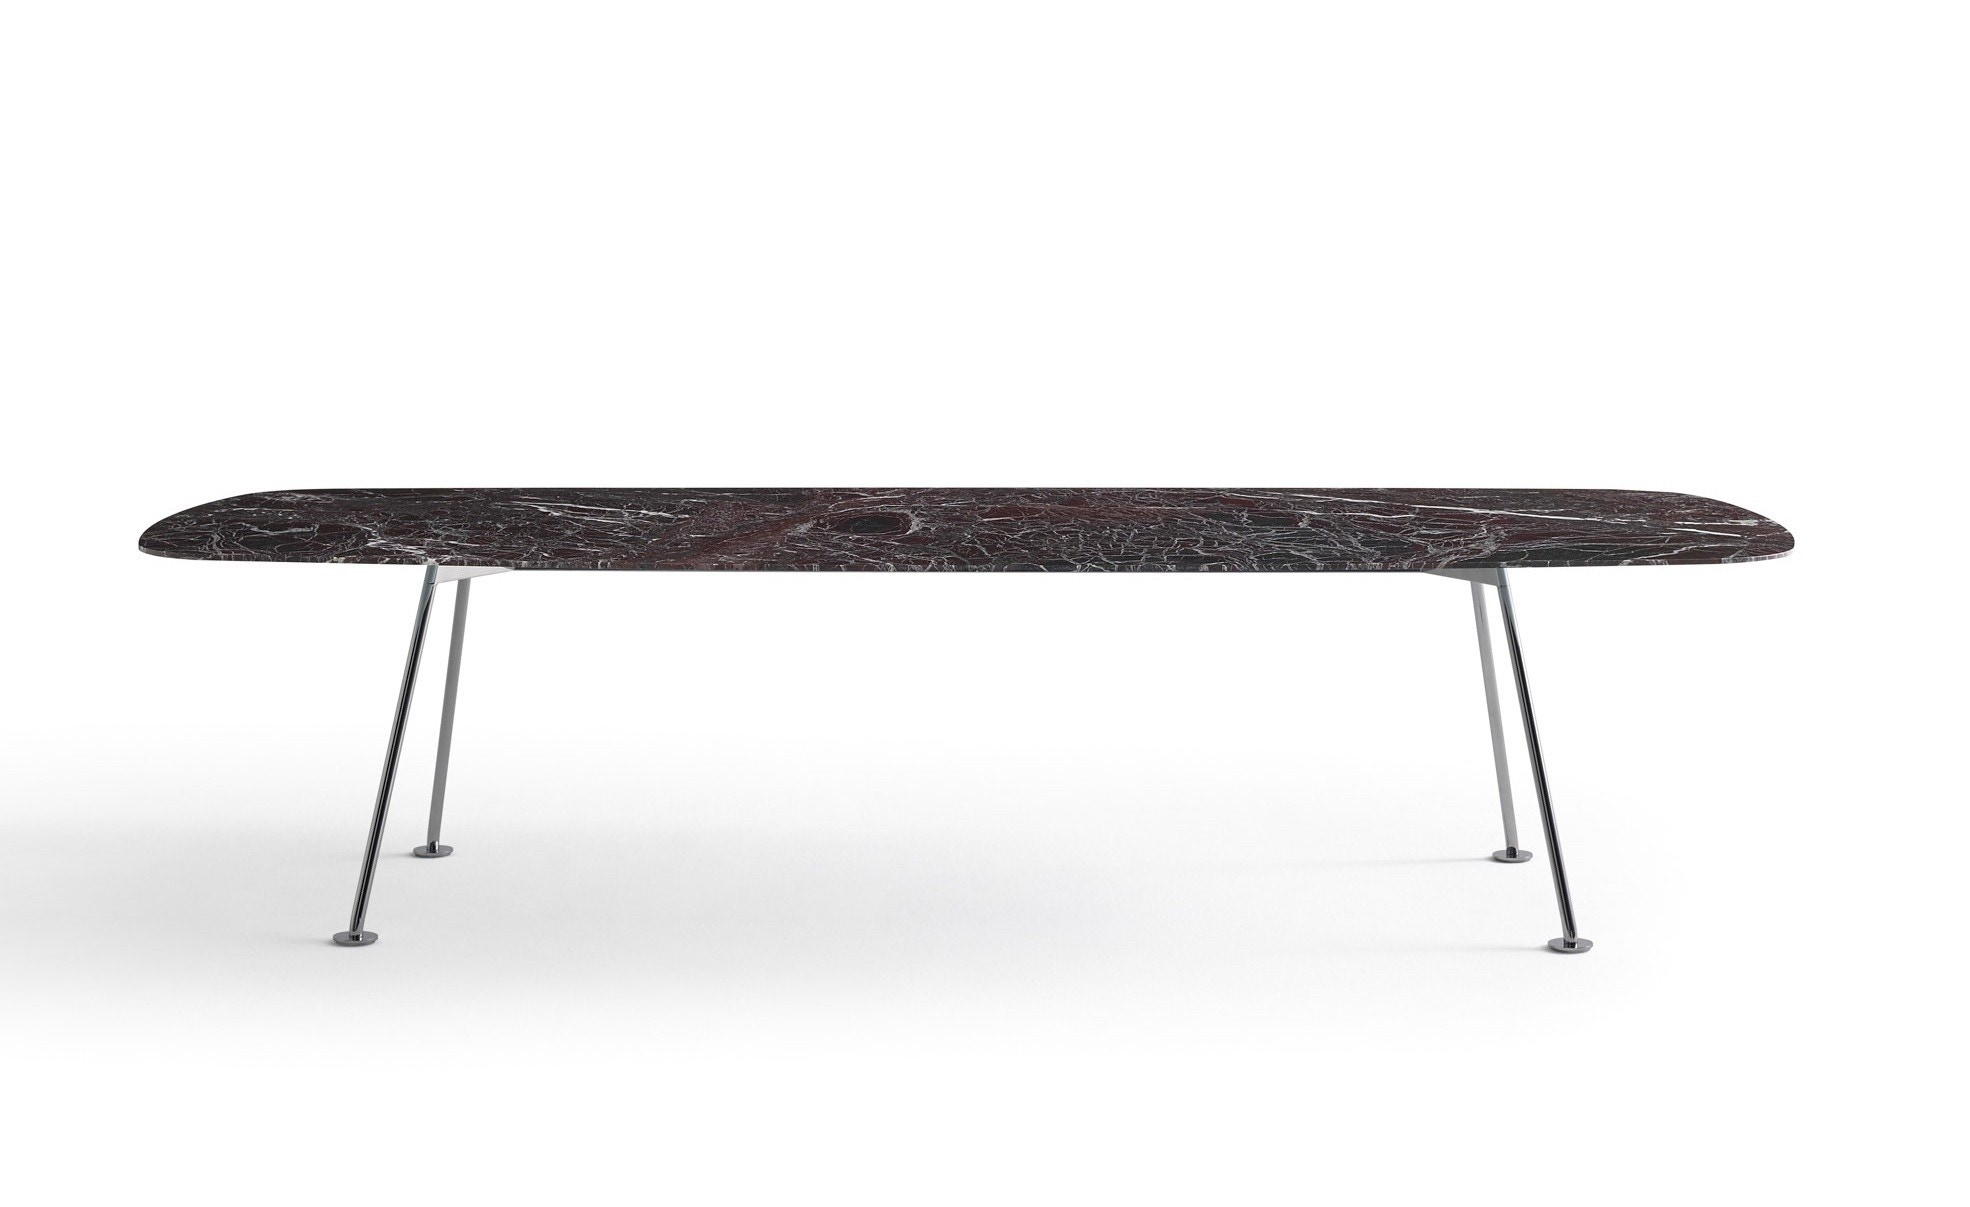 Knoll Piero Lissoni - Grasshopper High Table